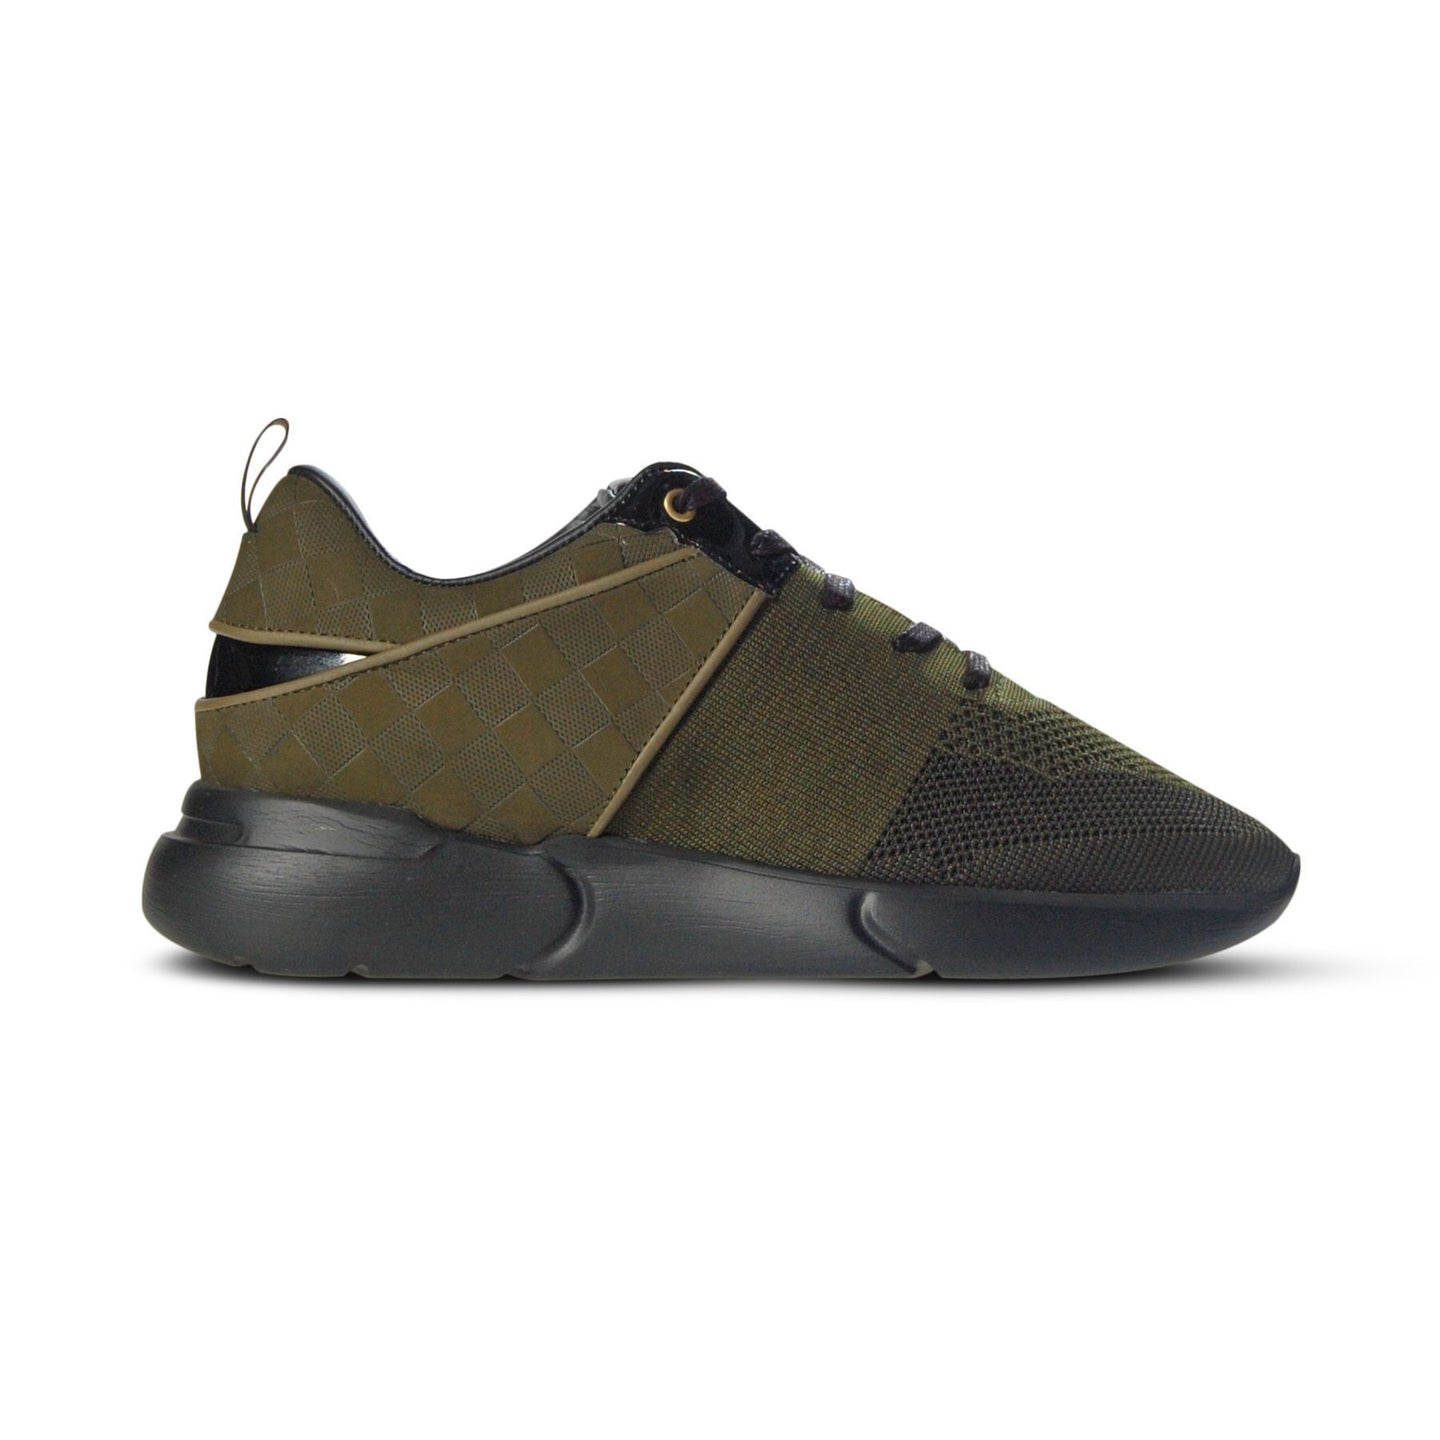 Mercer Amsterdam Wooster Evo Trainers Olive